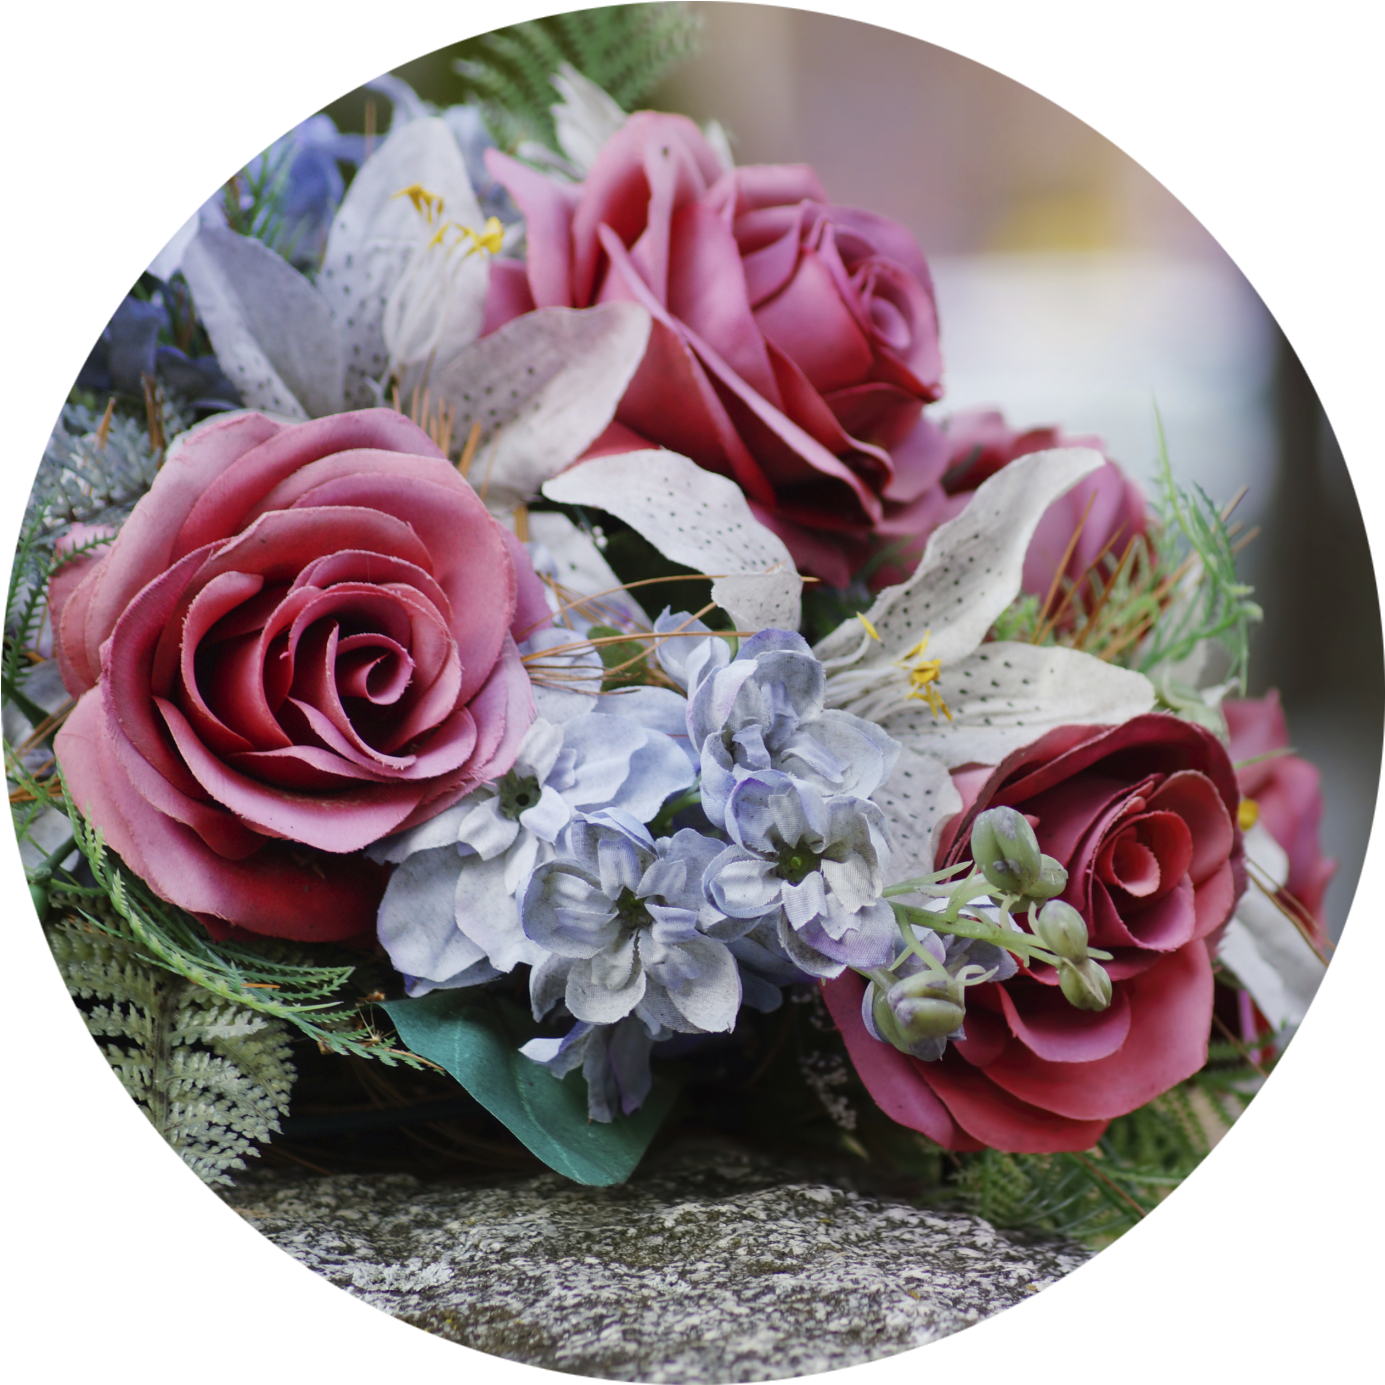 Flowers - Funeral Flowers For Men (1397x1396), Png Download